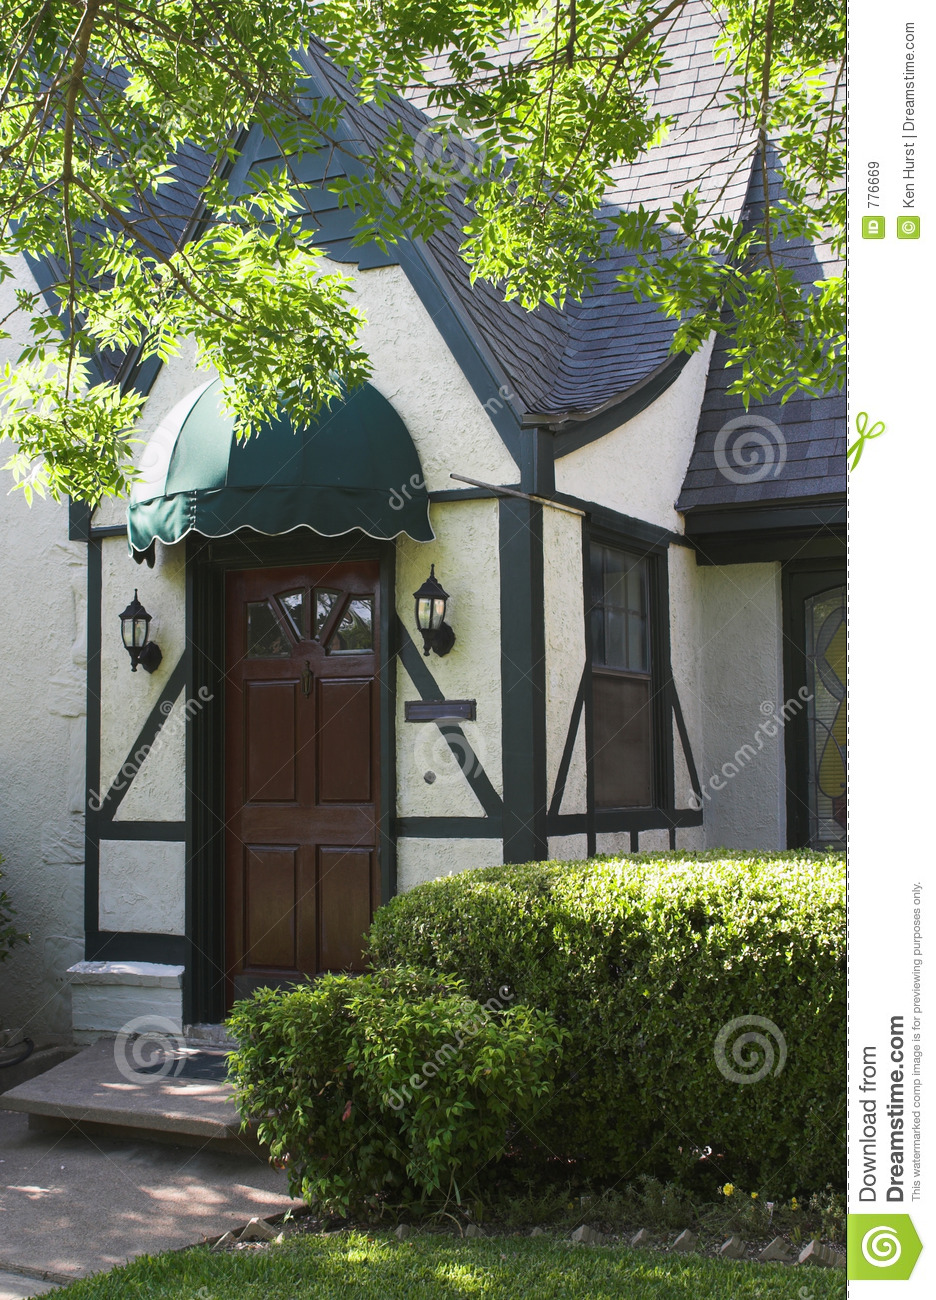 entryway to tudor style house 2 royalty free stock images image